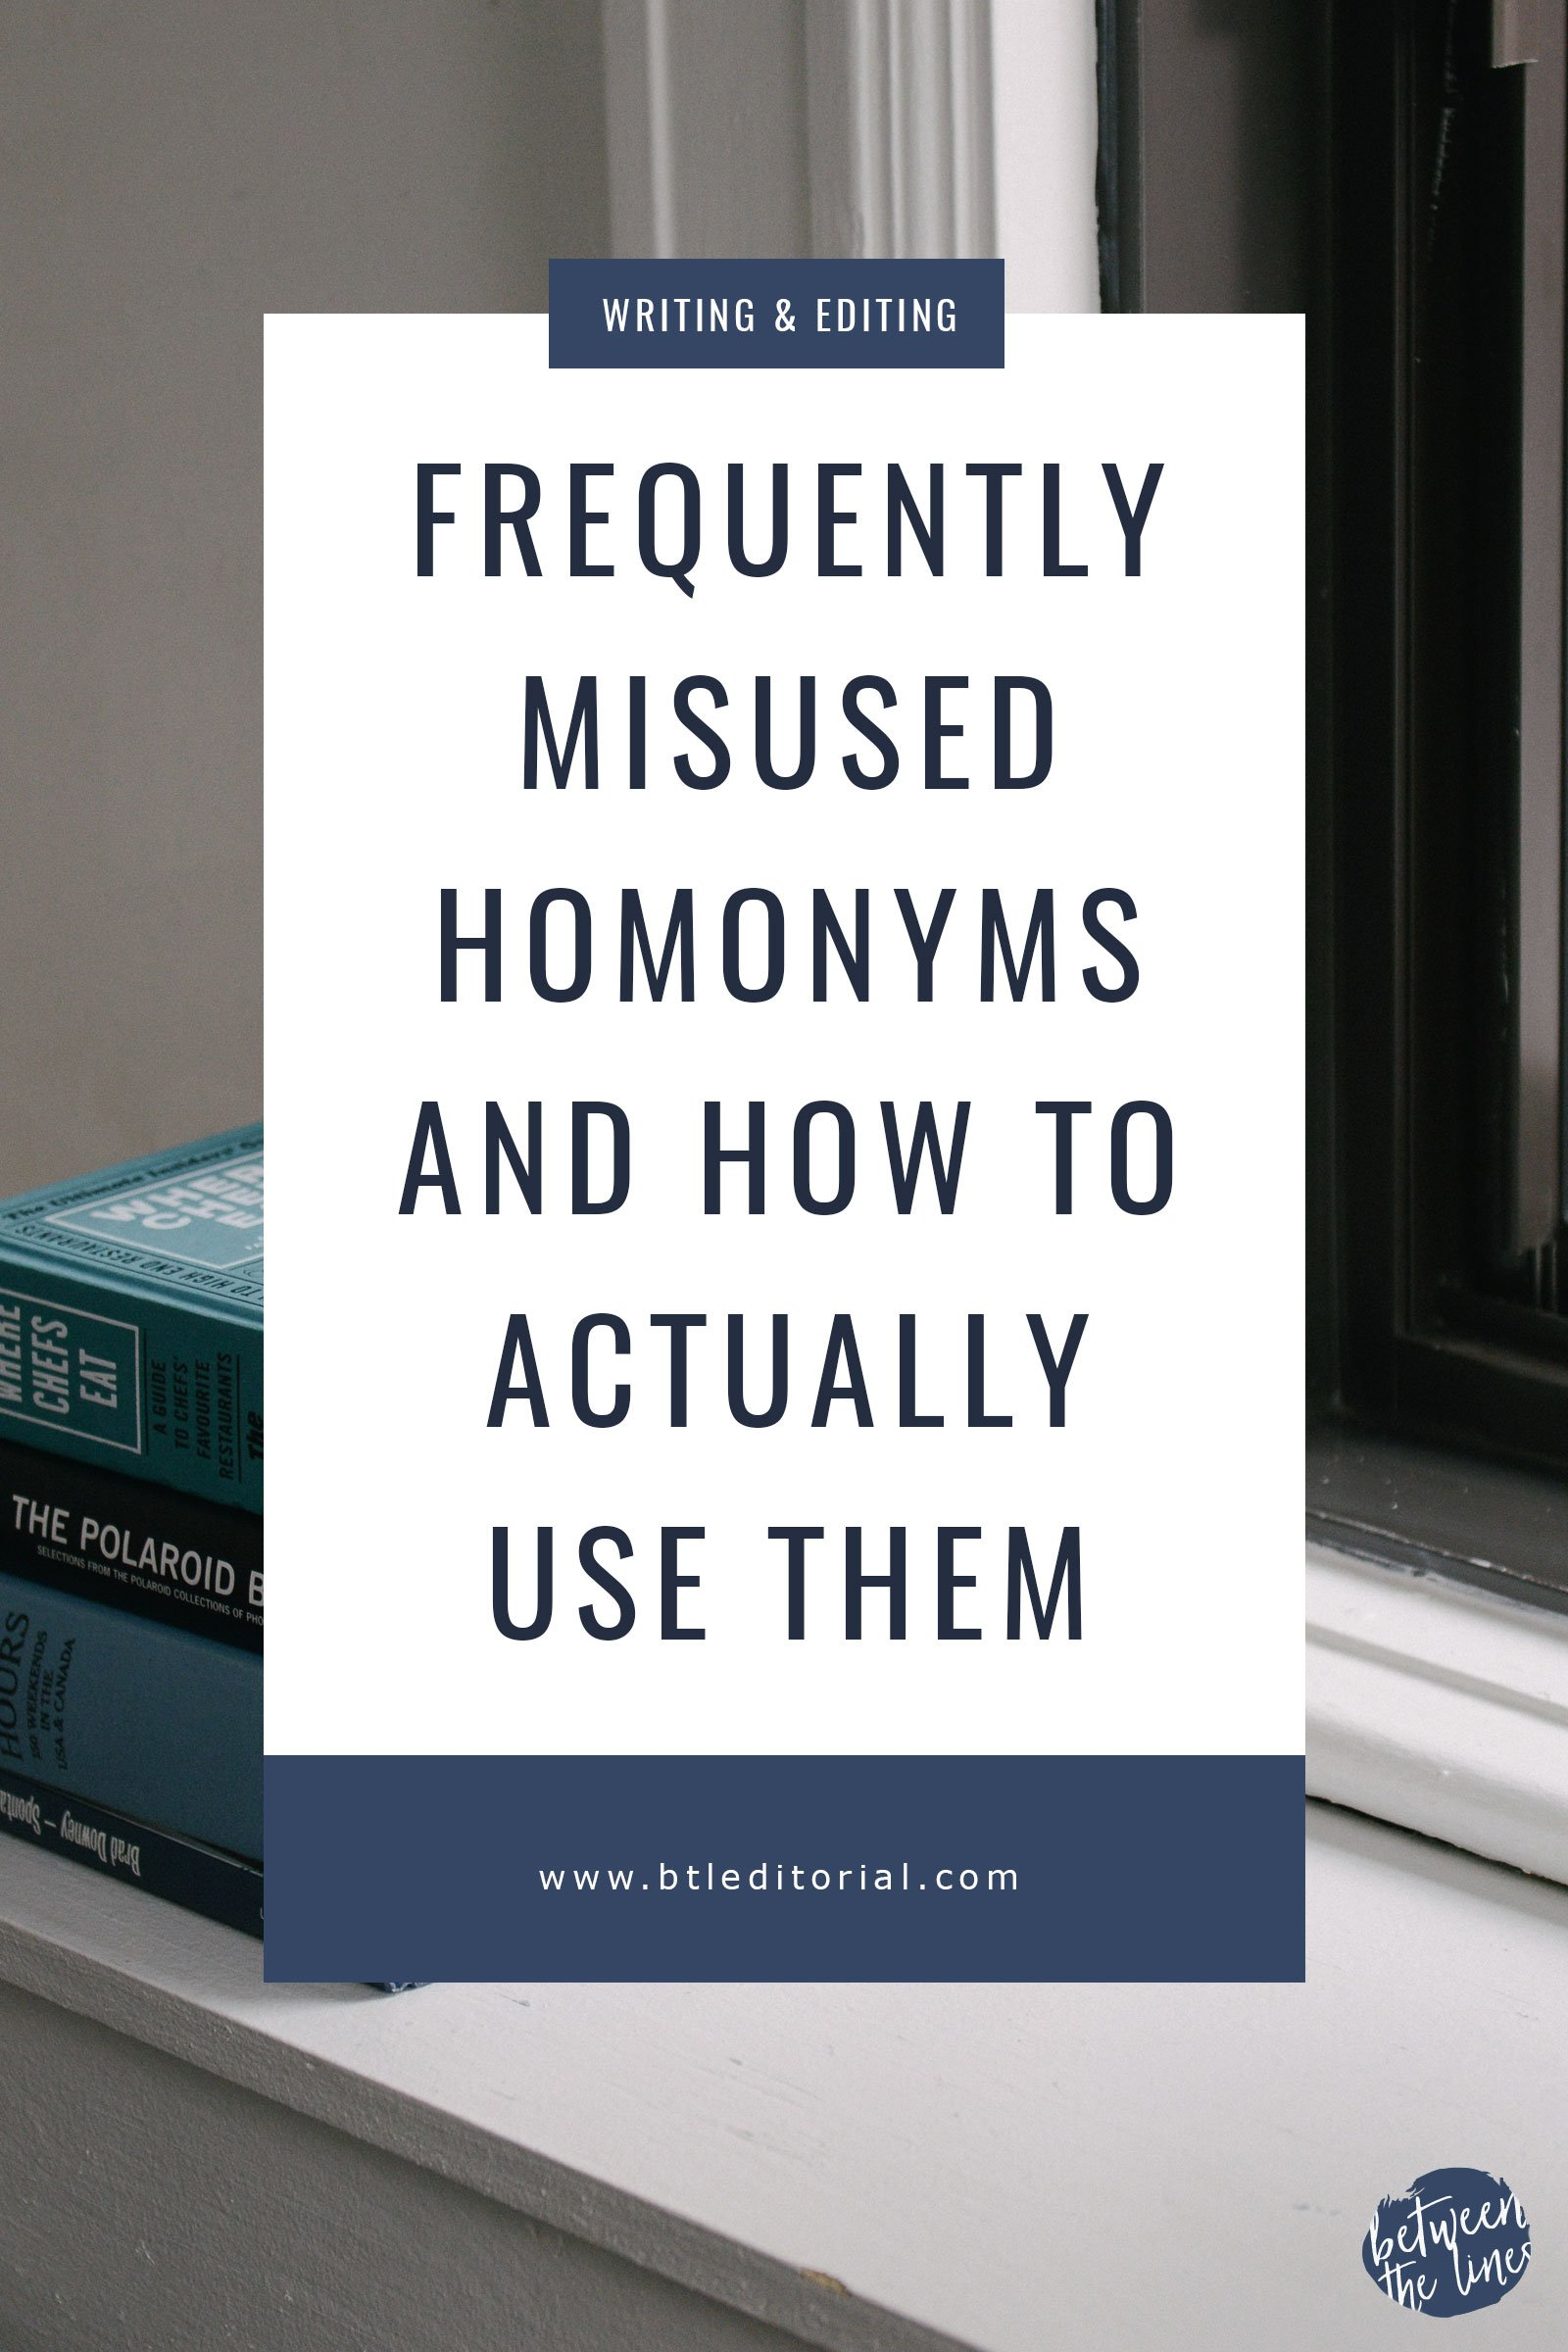 Frequently Misused Homonyms and How to Use Them